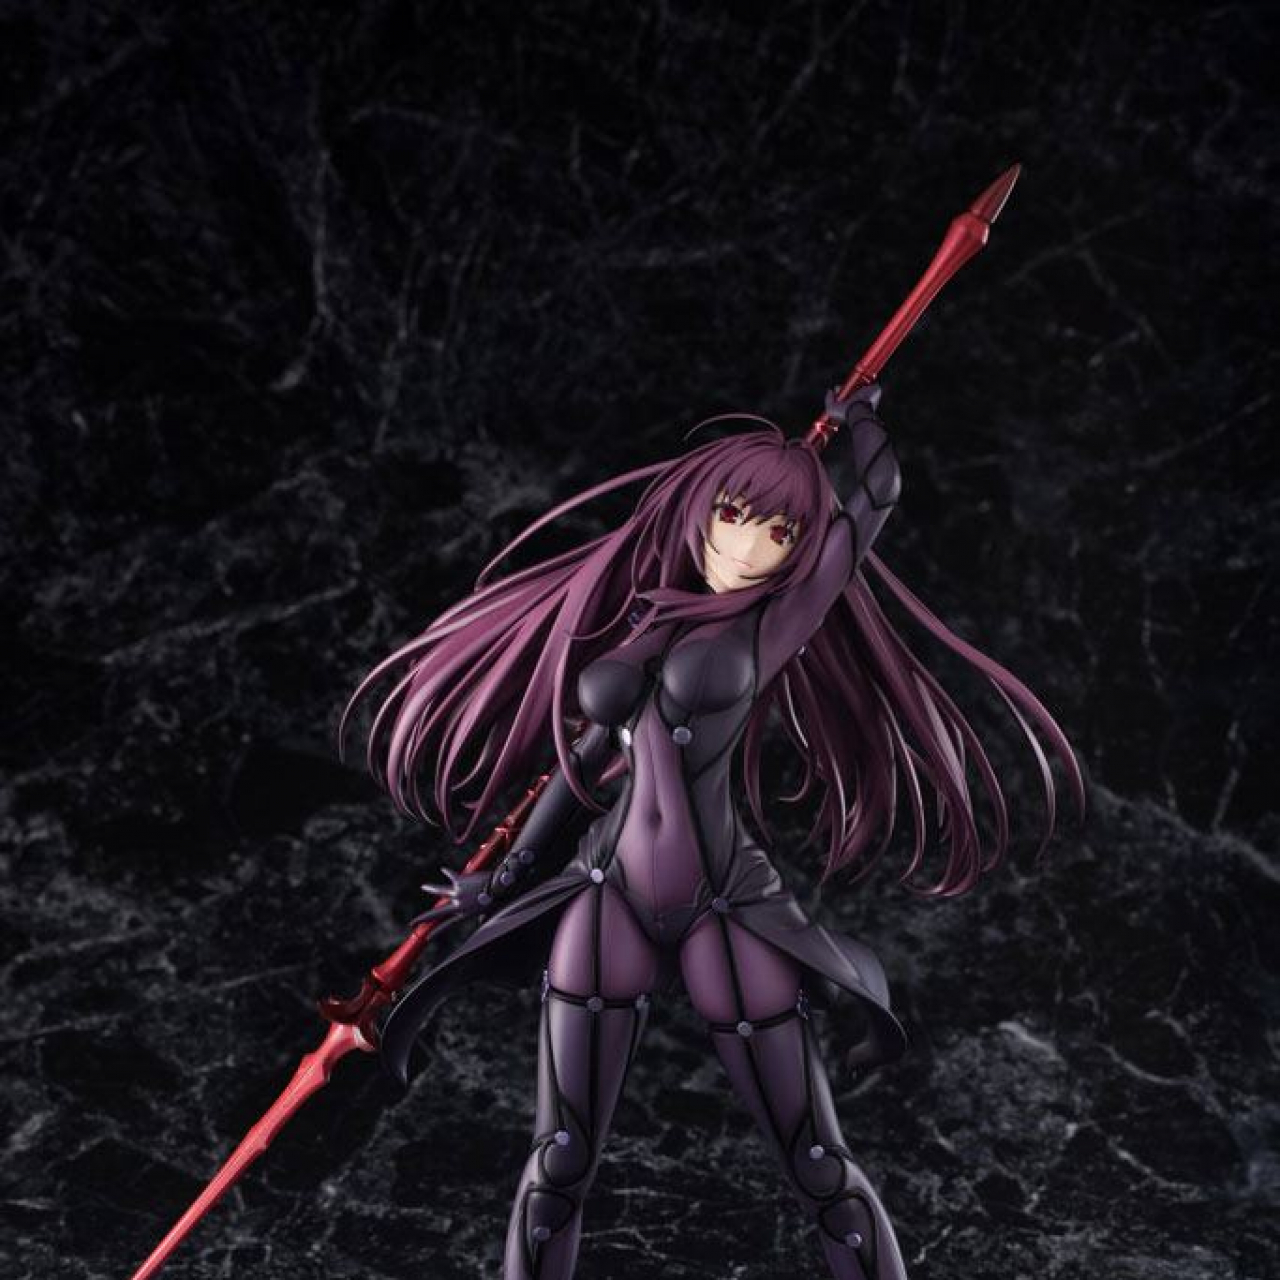 Fate/Grand Order: Lancer/Scathach (31cm, 1/7 scale)